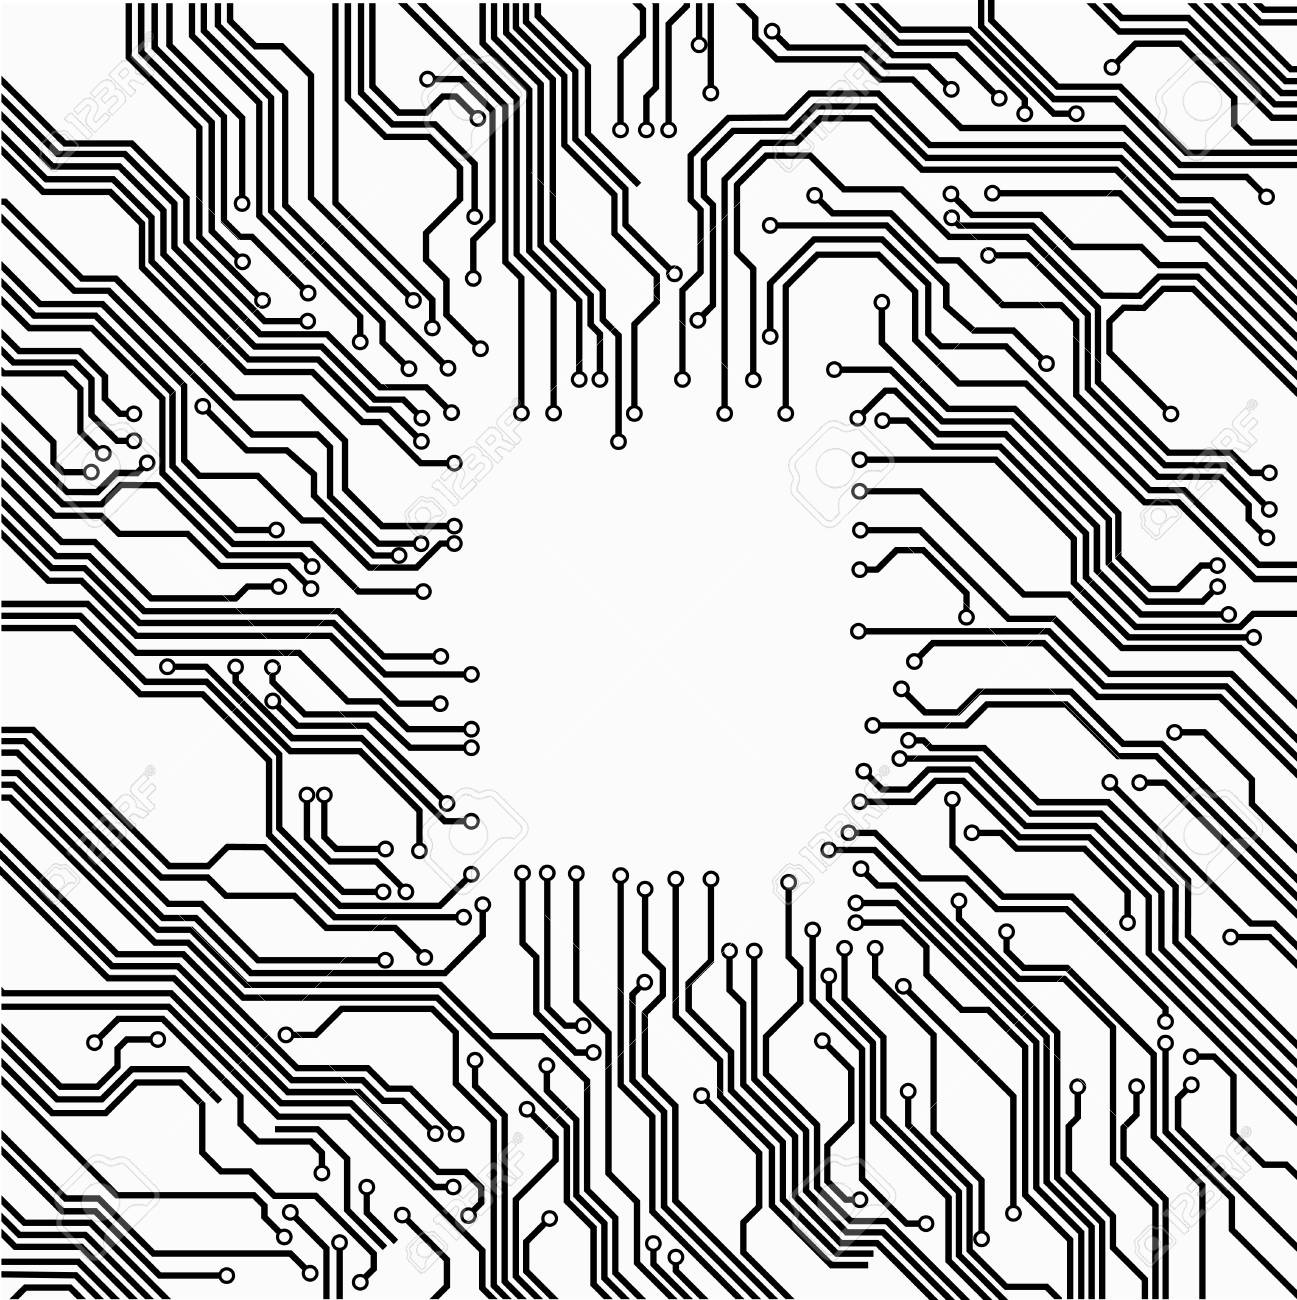 circuit board background, vector frame eps 8 no transparencycircuit board background, vector frame eps 8 no transparency vector illustration stock vector